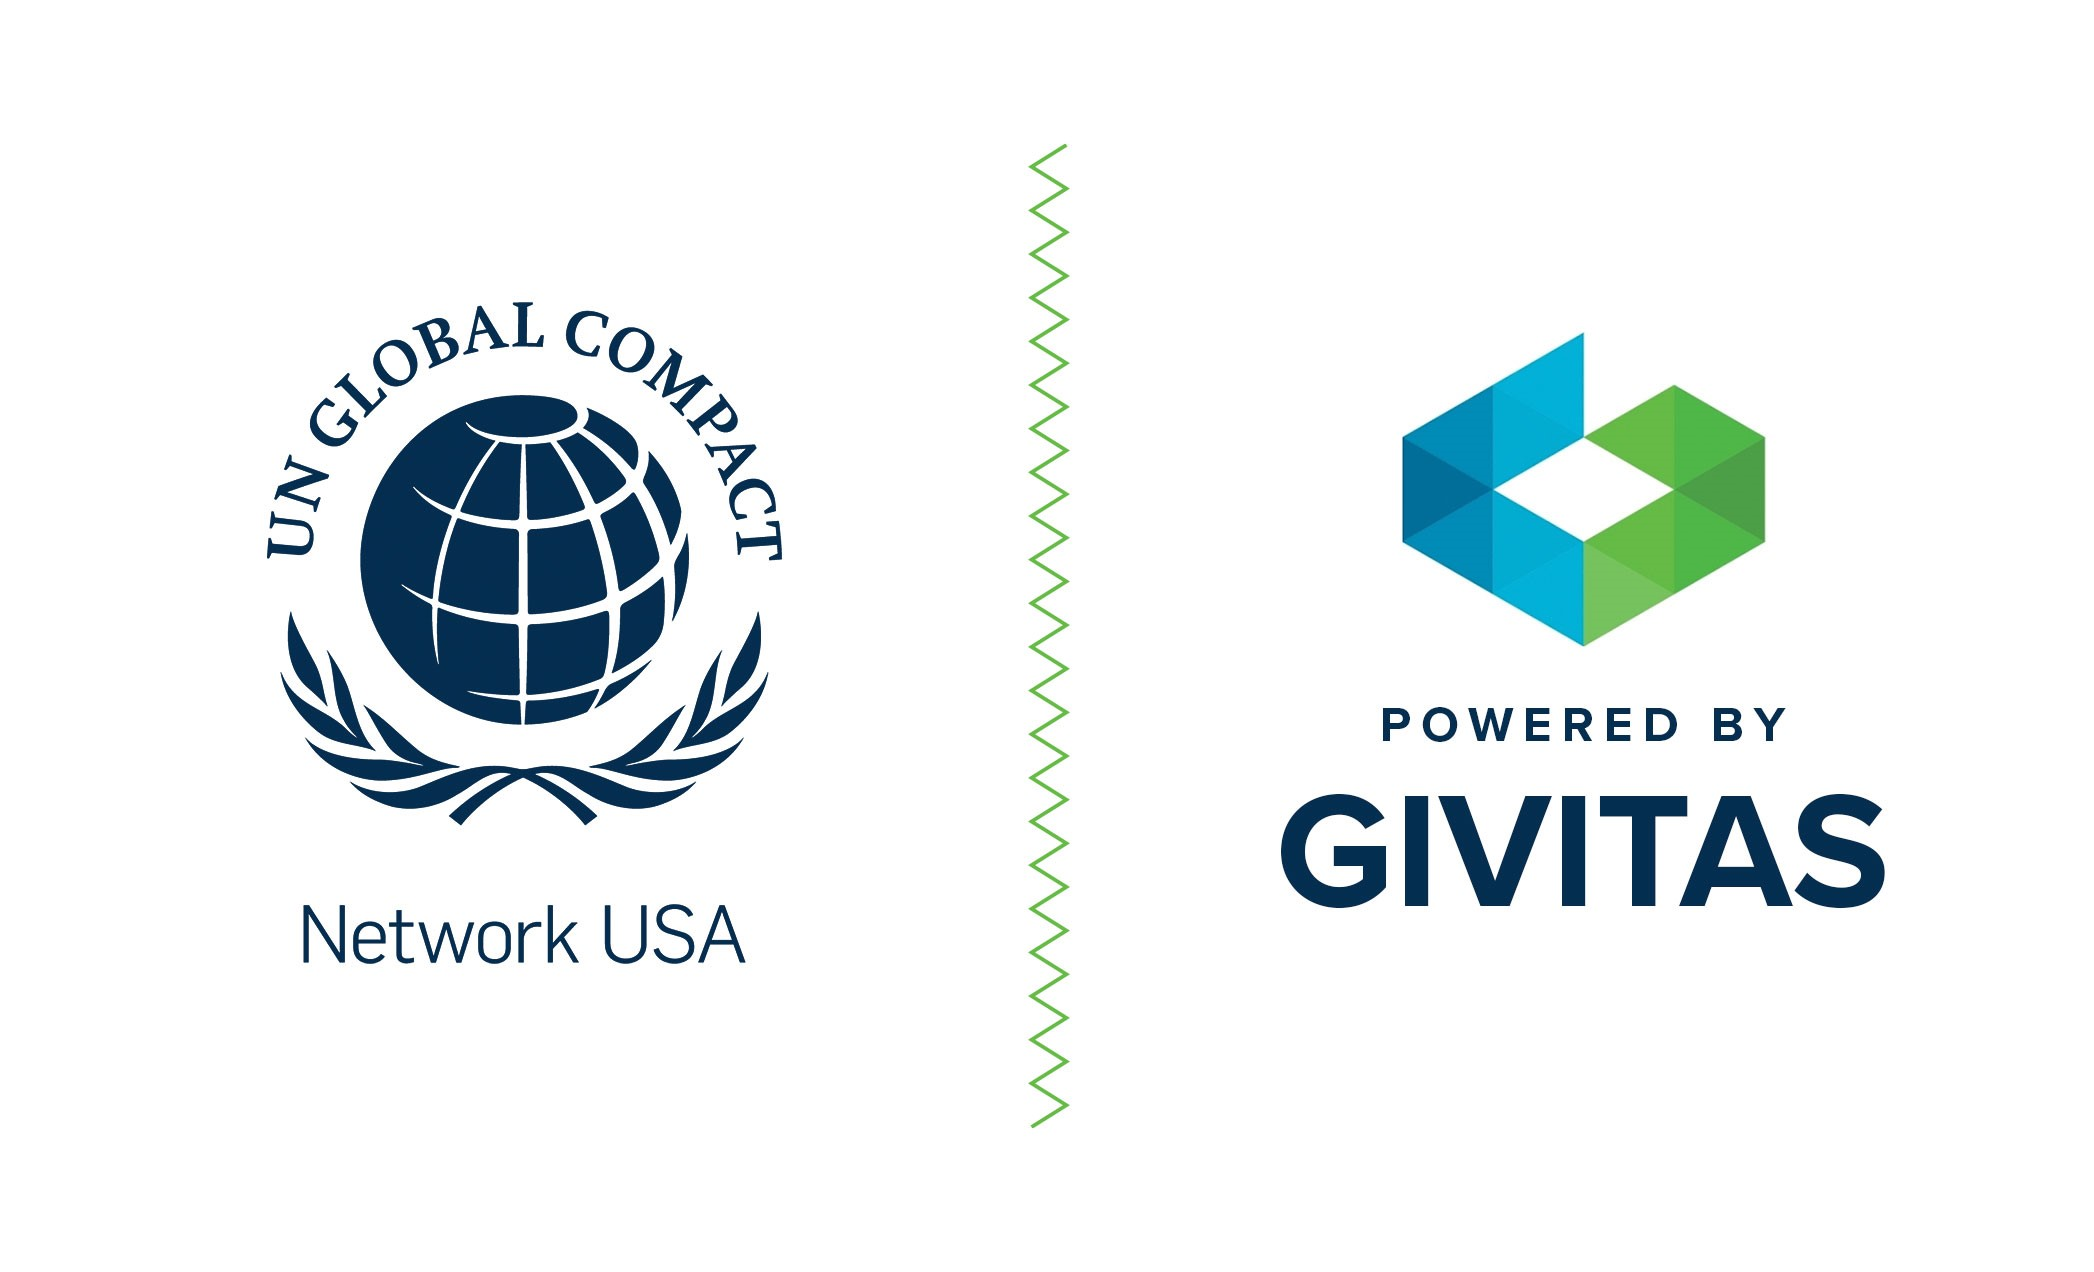 Givitas: A Network USA Tool to Ask For and Give Help